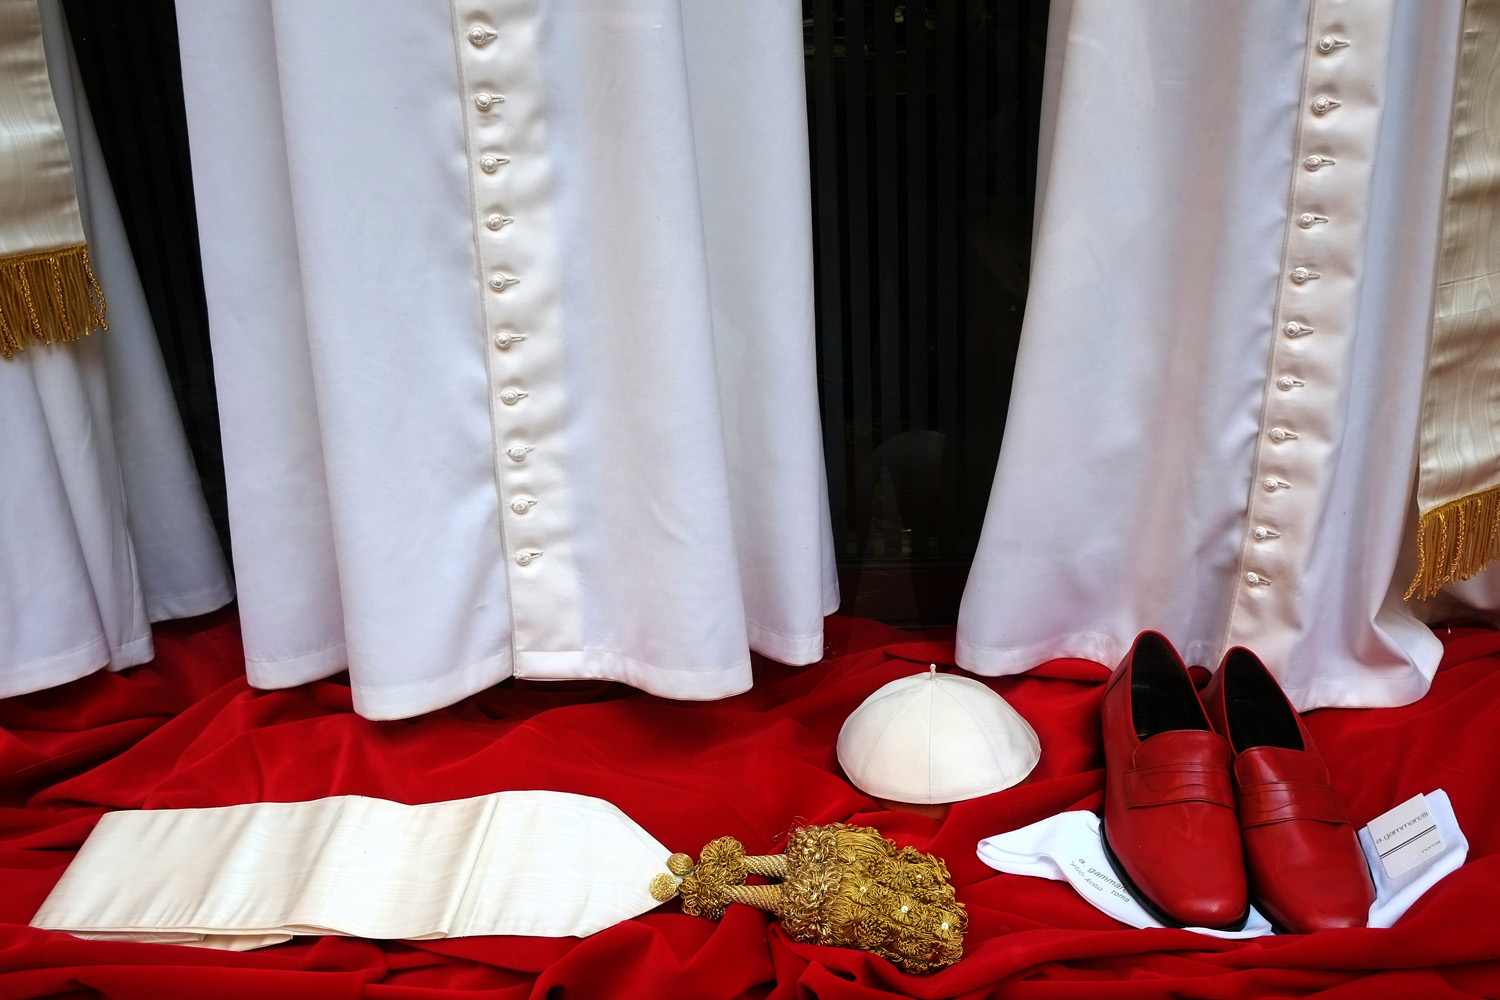 March 4, 2013. Vestments for the new Pope to be elected are displayed in the window of Italian ecclesiastical tailor Gammarelli in Rome.